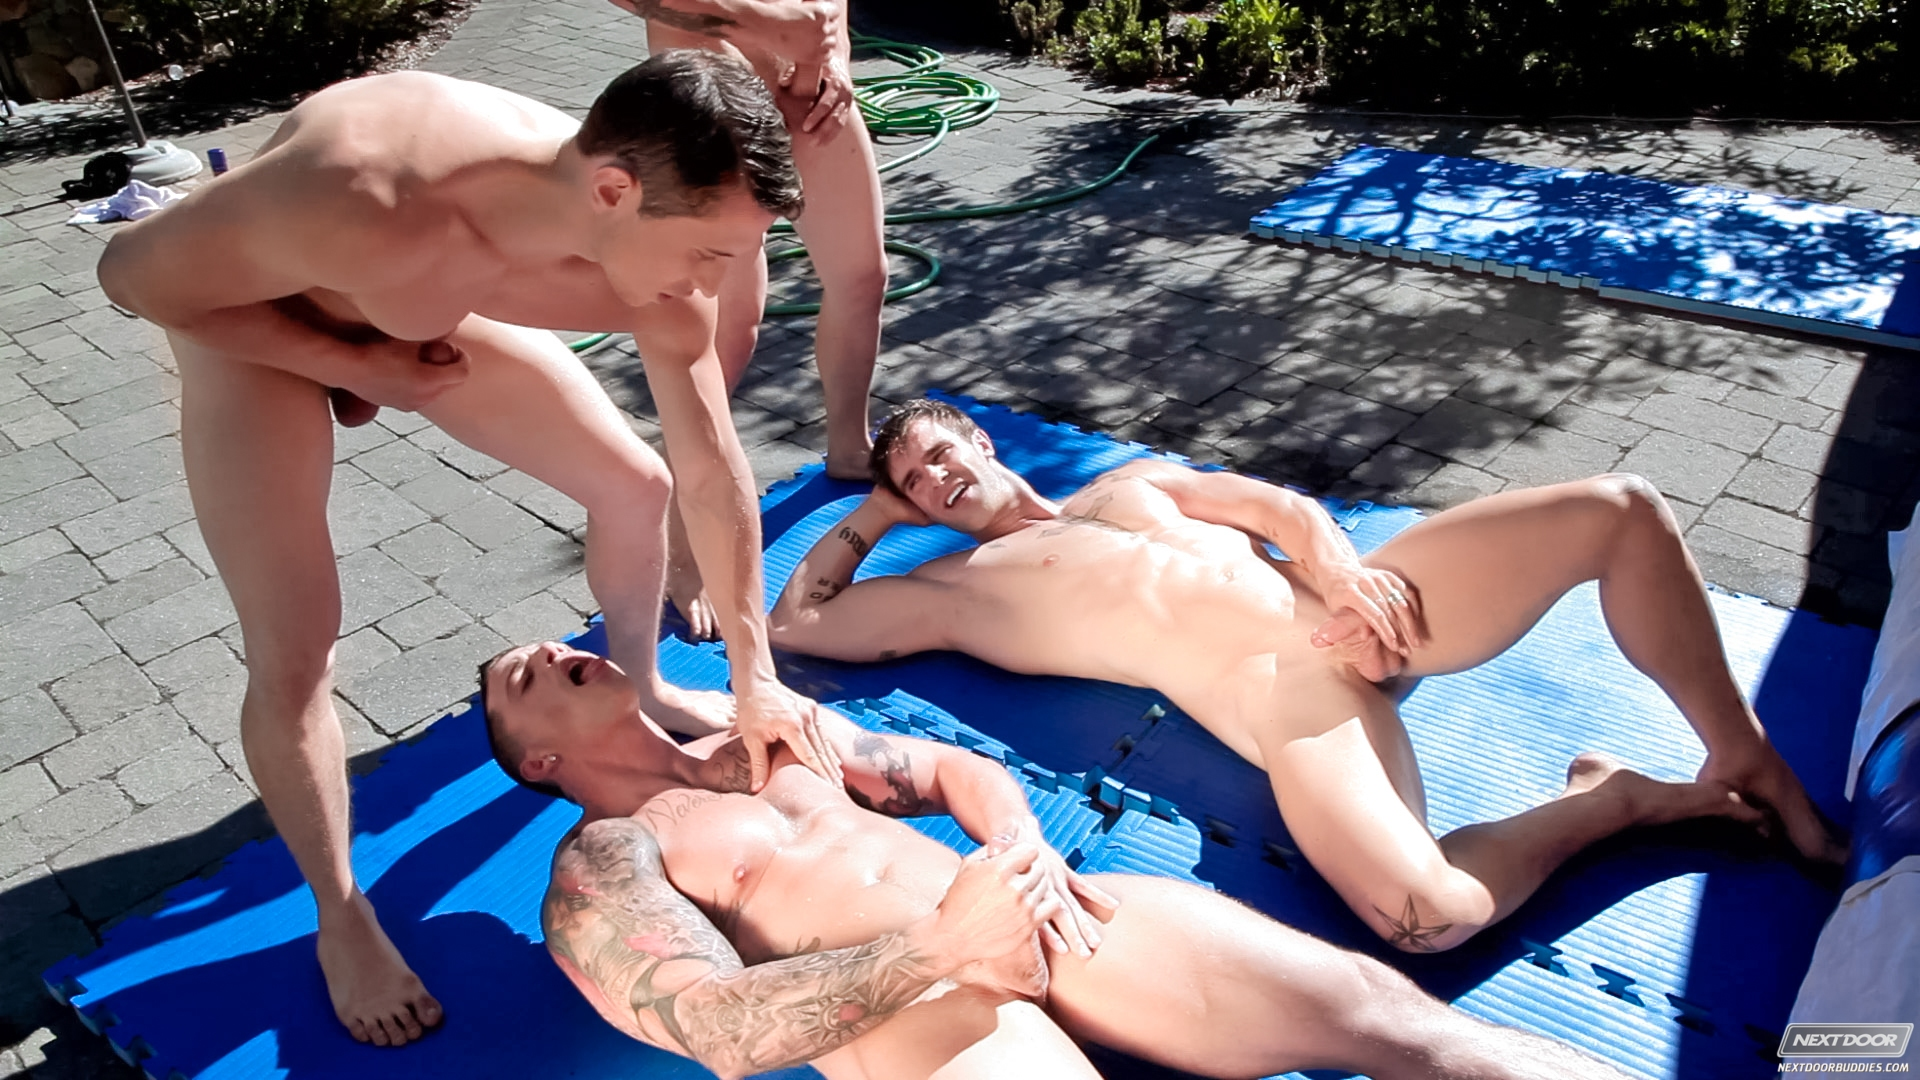 image The taylor chandler sex tape intersex